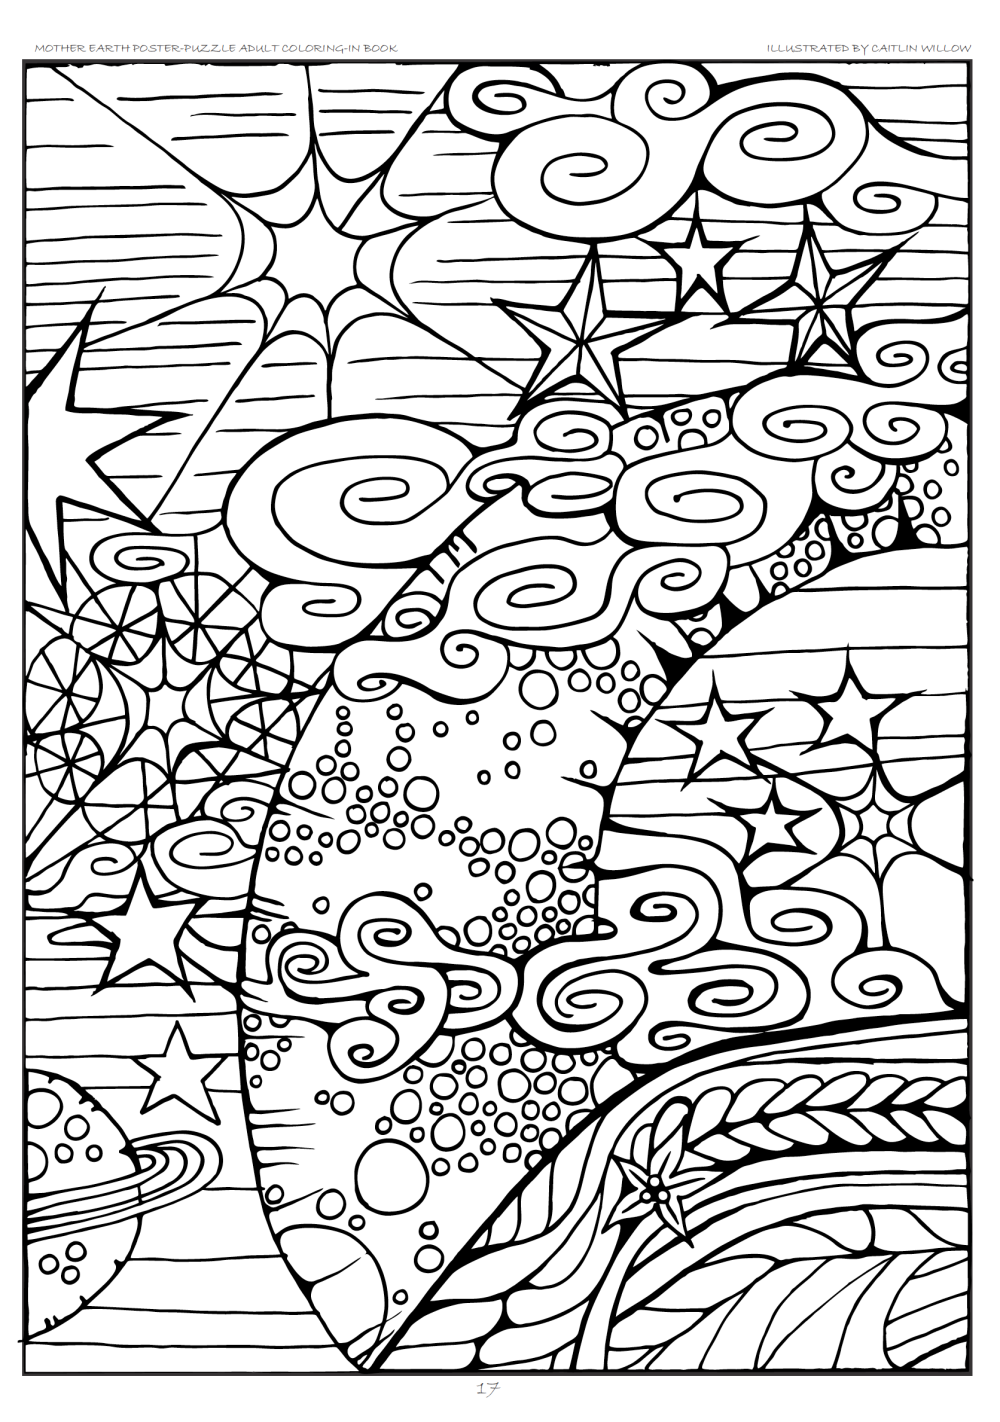 Free Coloring Page from Mother Earth Poster-Puzzle Adult Coloring-In ...